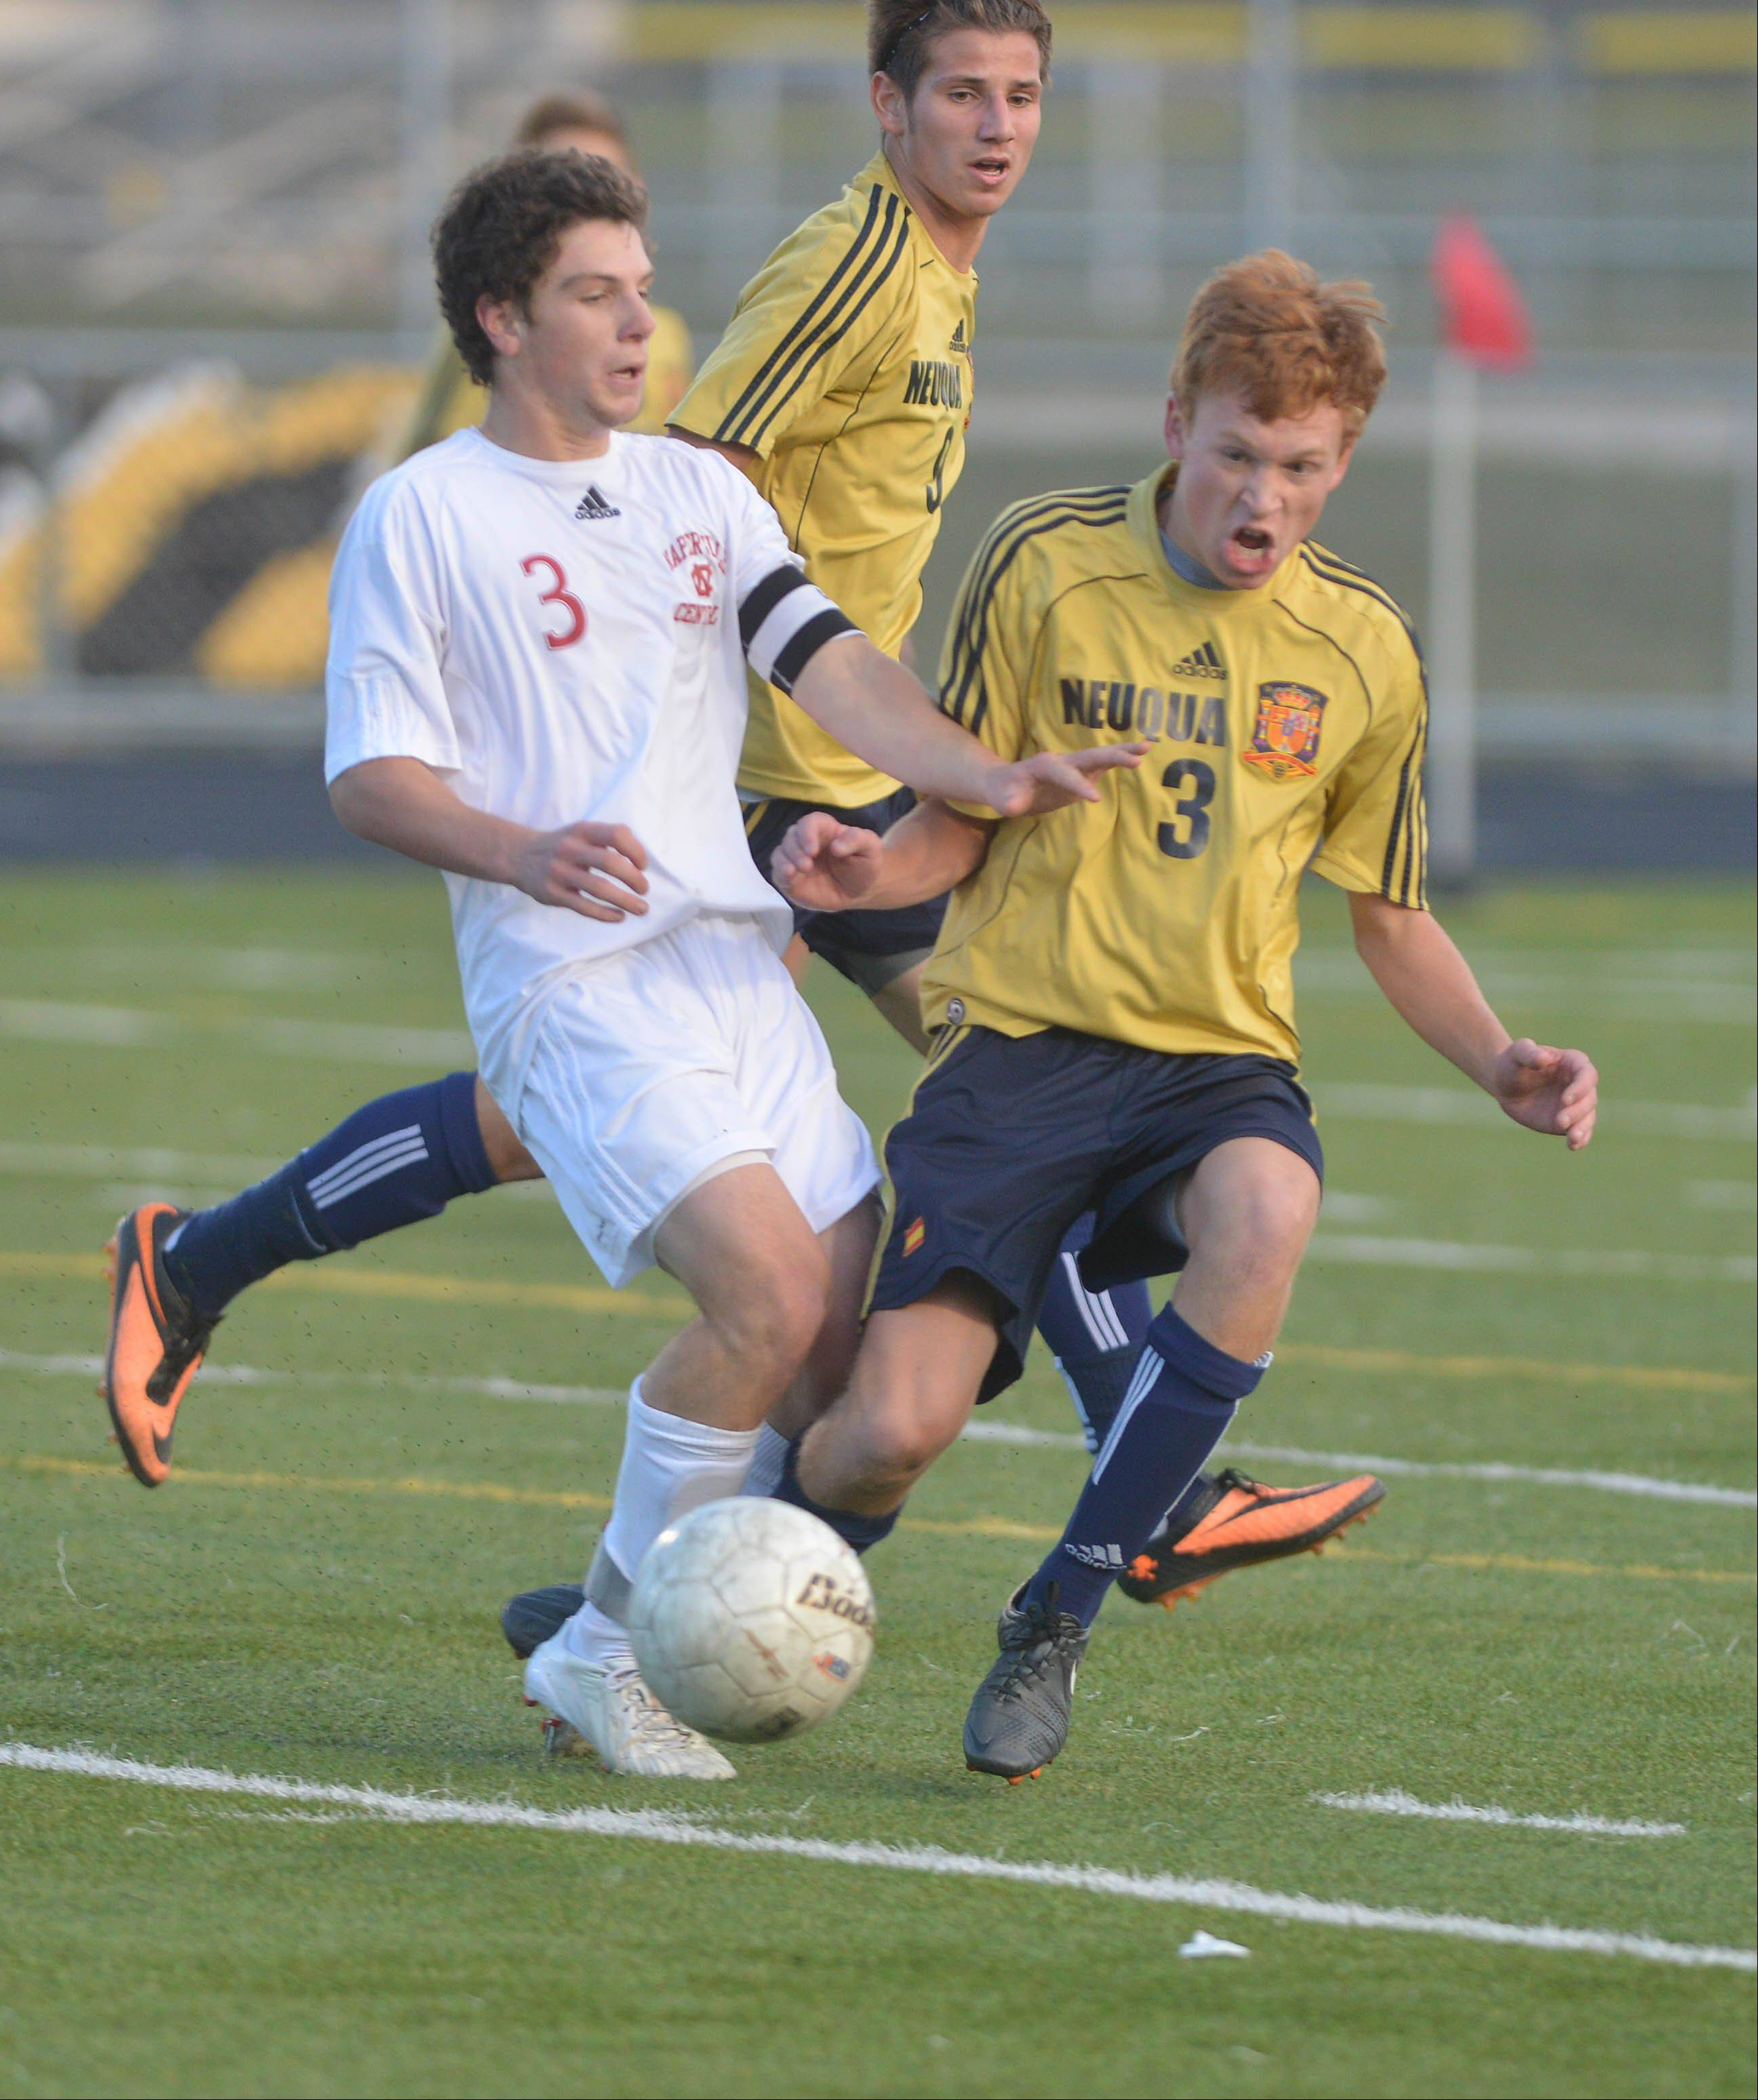 Jay Tegge of Naperville Central and Reed Kurtenbach of Neuqua Valley go after a loose ball during the Naperville Central vs. Neuqua Valley boys soccer Class 3A Metea Valley sectional semifinals game Tuesday.